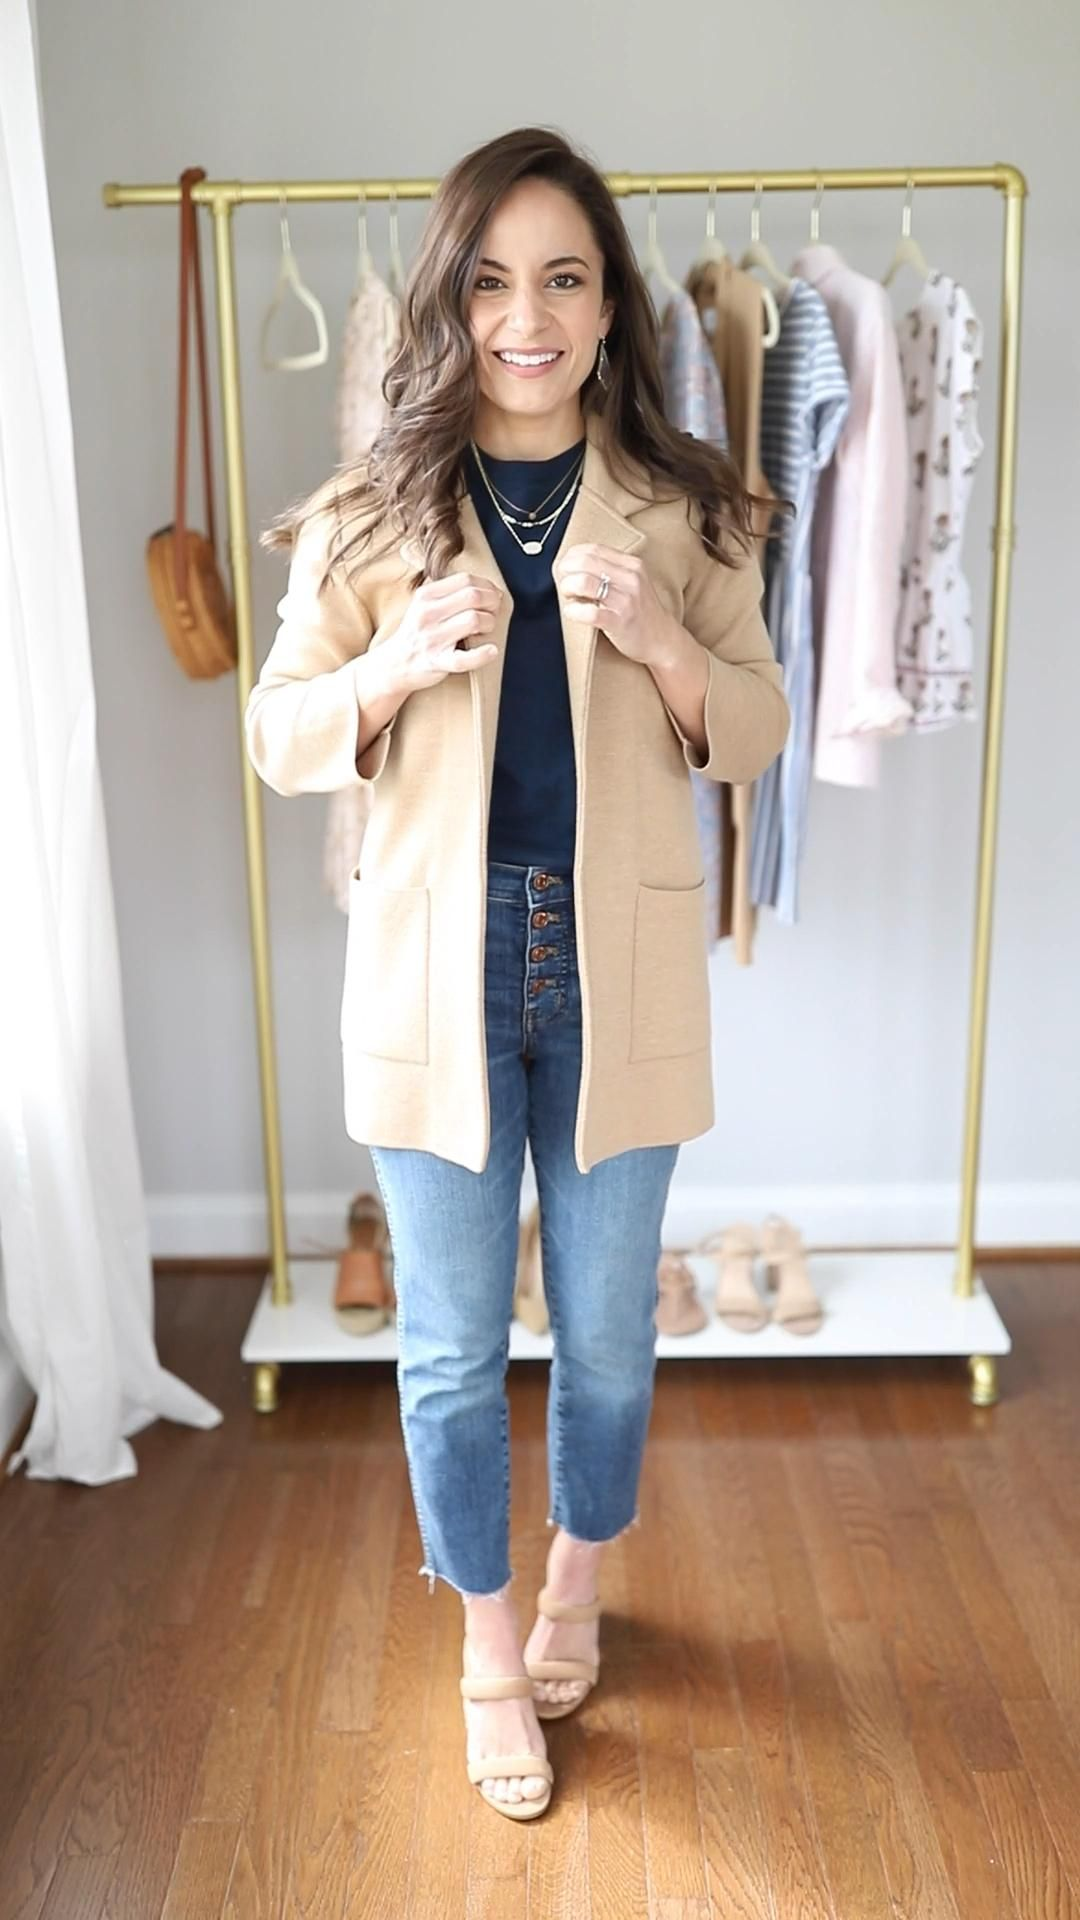 Multiple ways to wear straight leg jeans this spring for petite women | petite style | spring style | spring outfit | j.crew jeans | jeans outfits